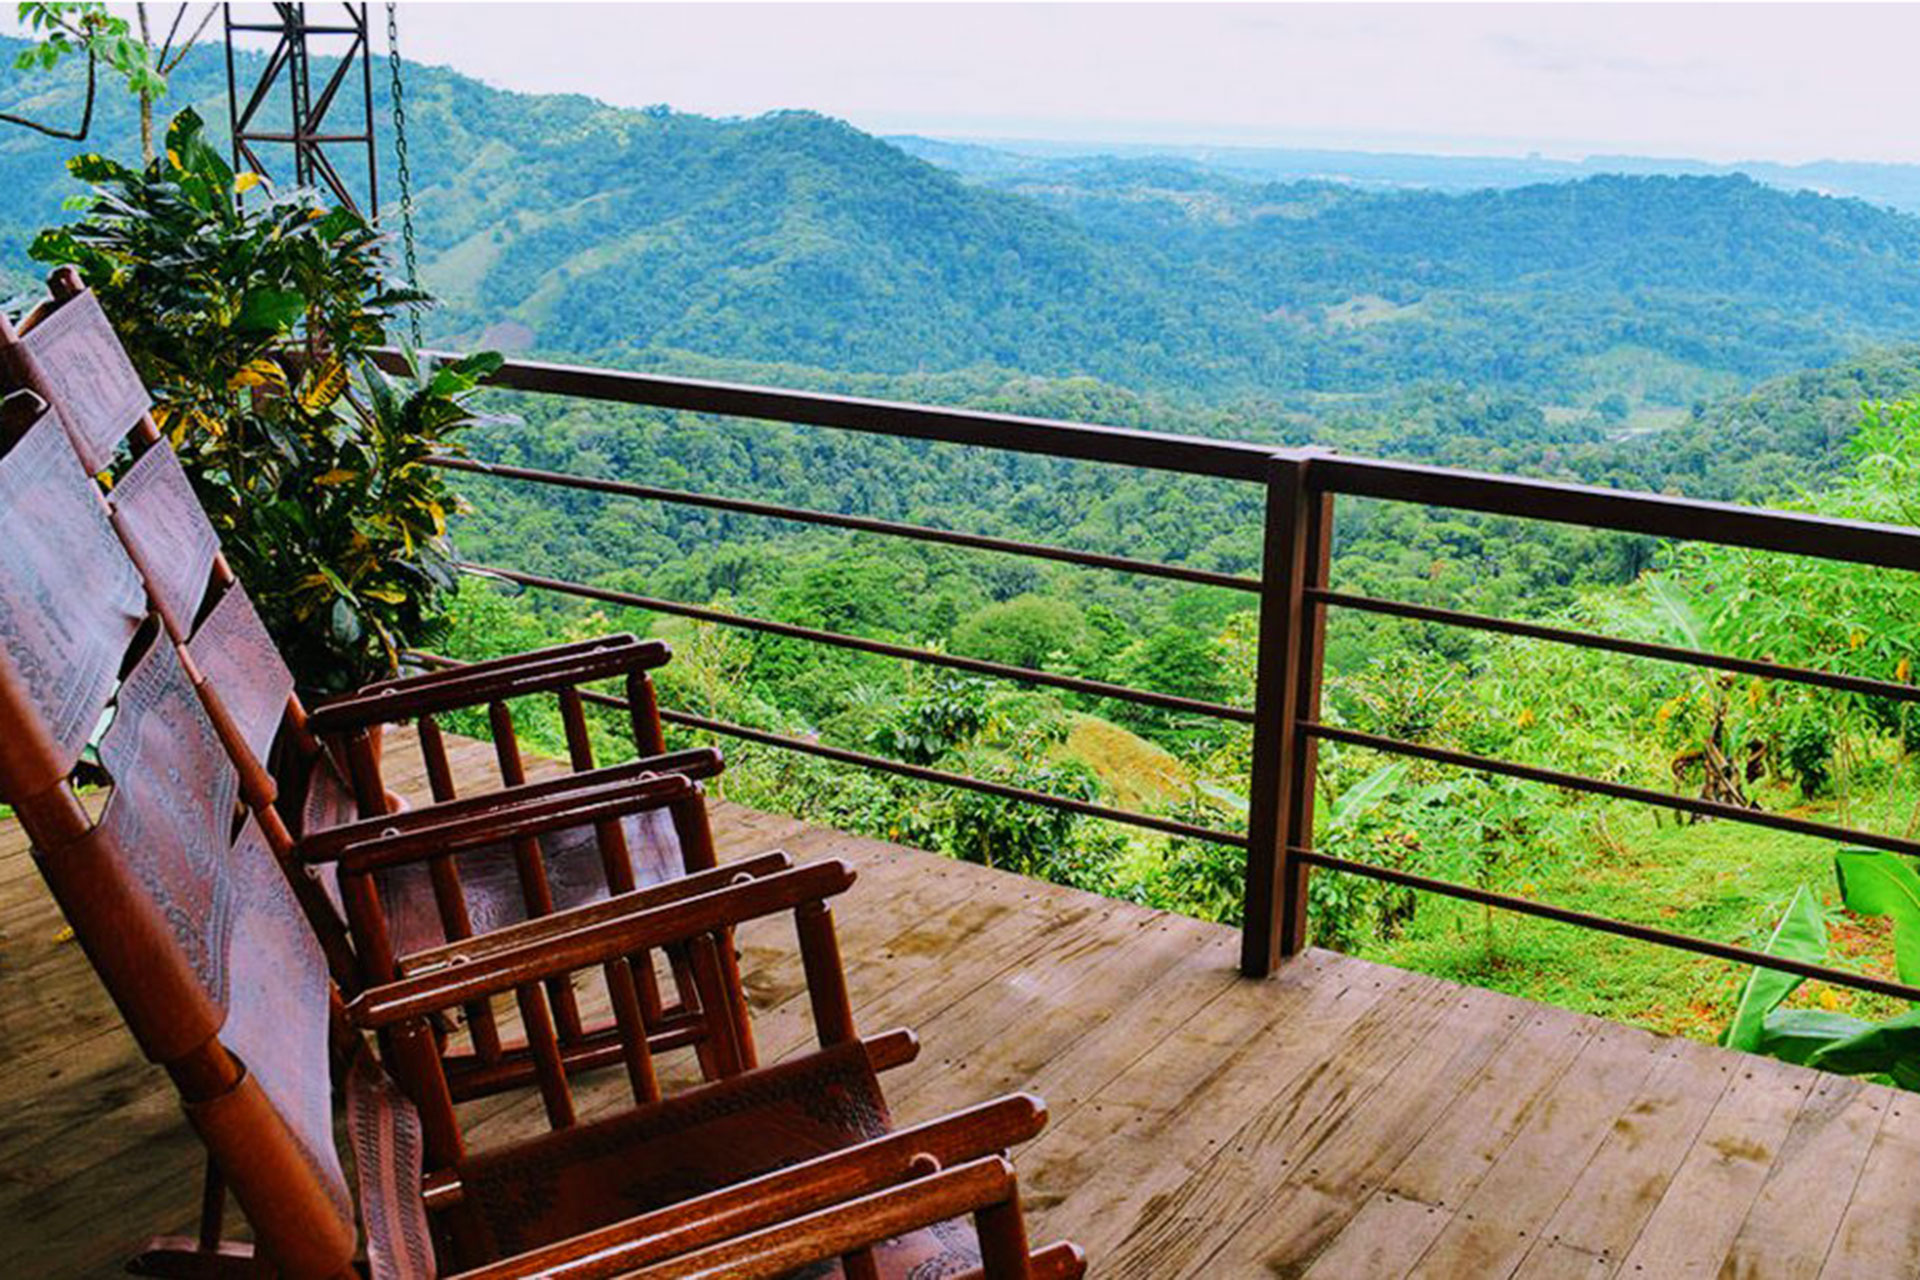 View from Treehouse at Santa Juana Lodge in Costa Rica; Courtesy of Santa Juana Lodge